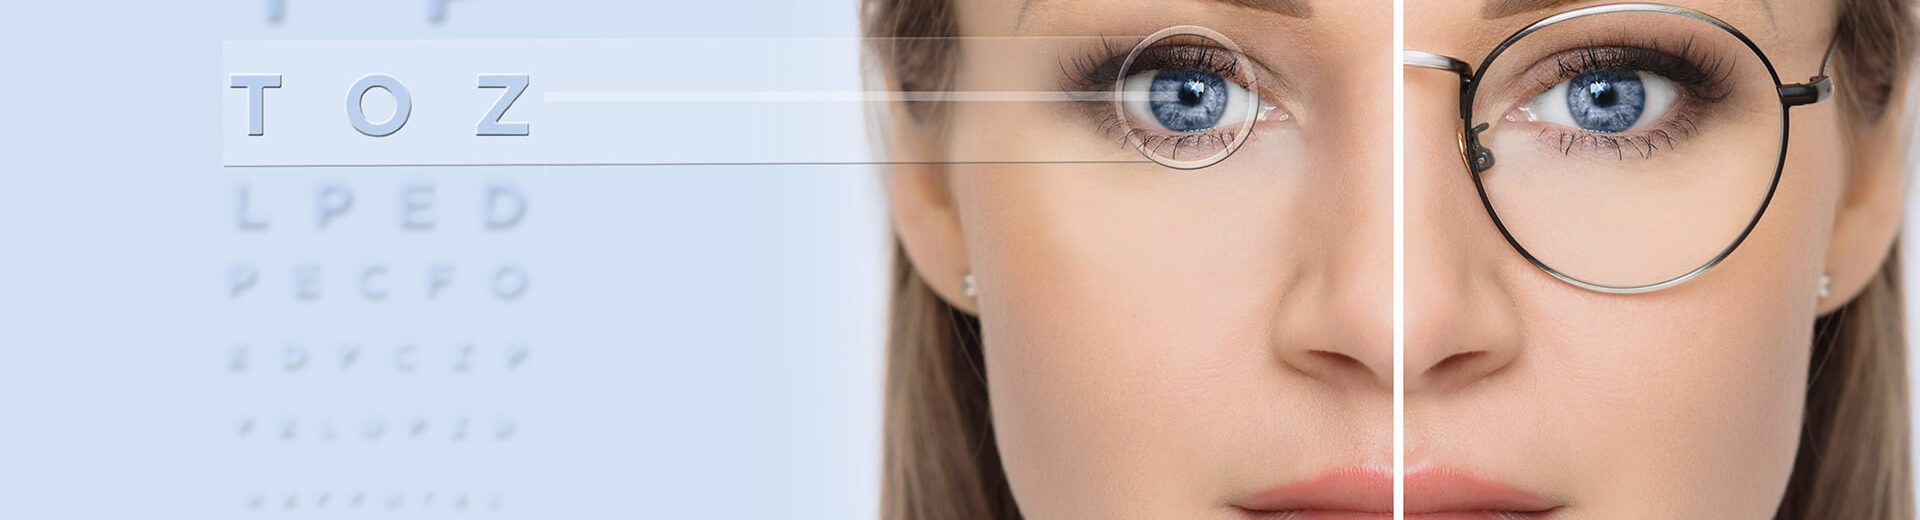 eye care after laser eye surgery